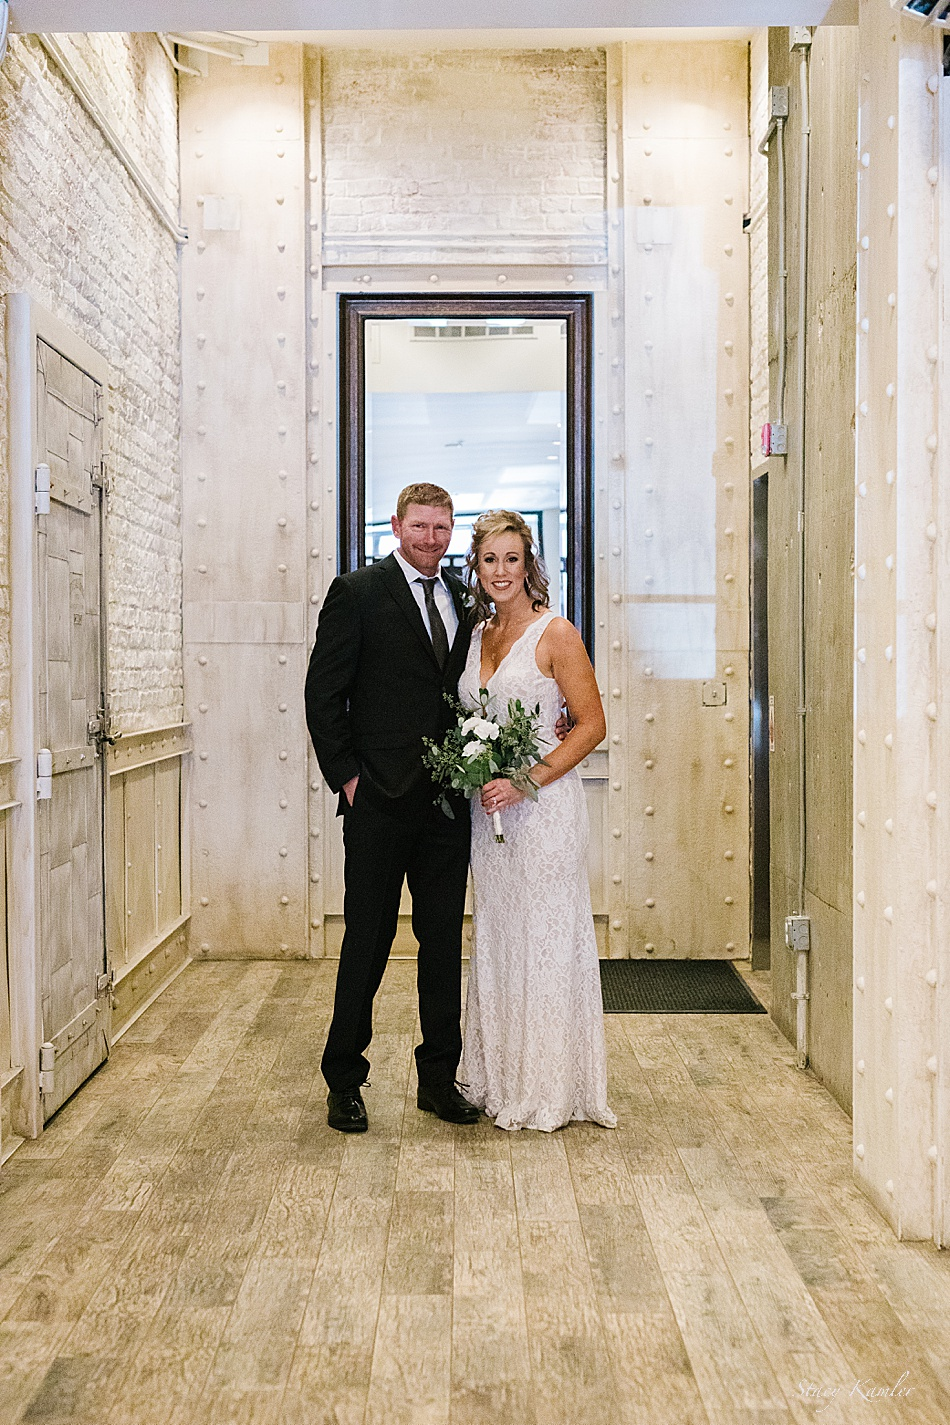 Wedding Photos in an old downtown building, Lincoln NE